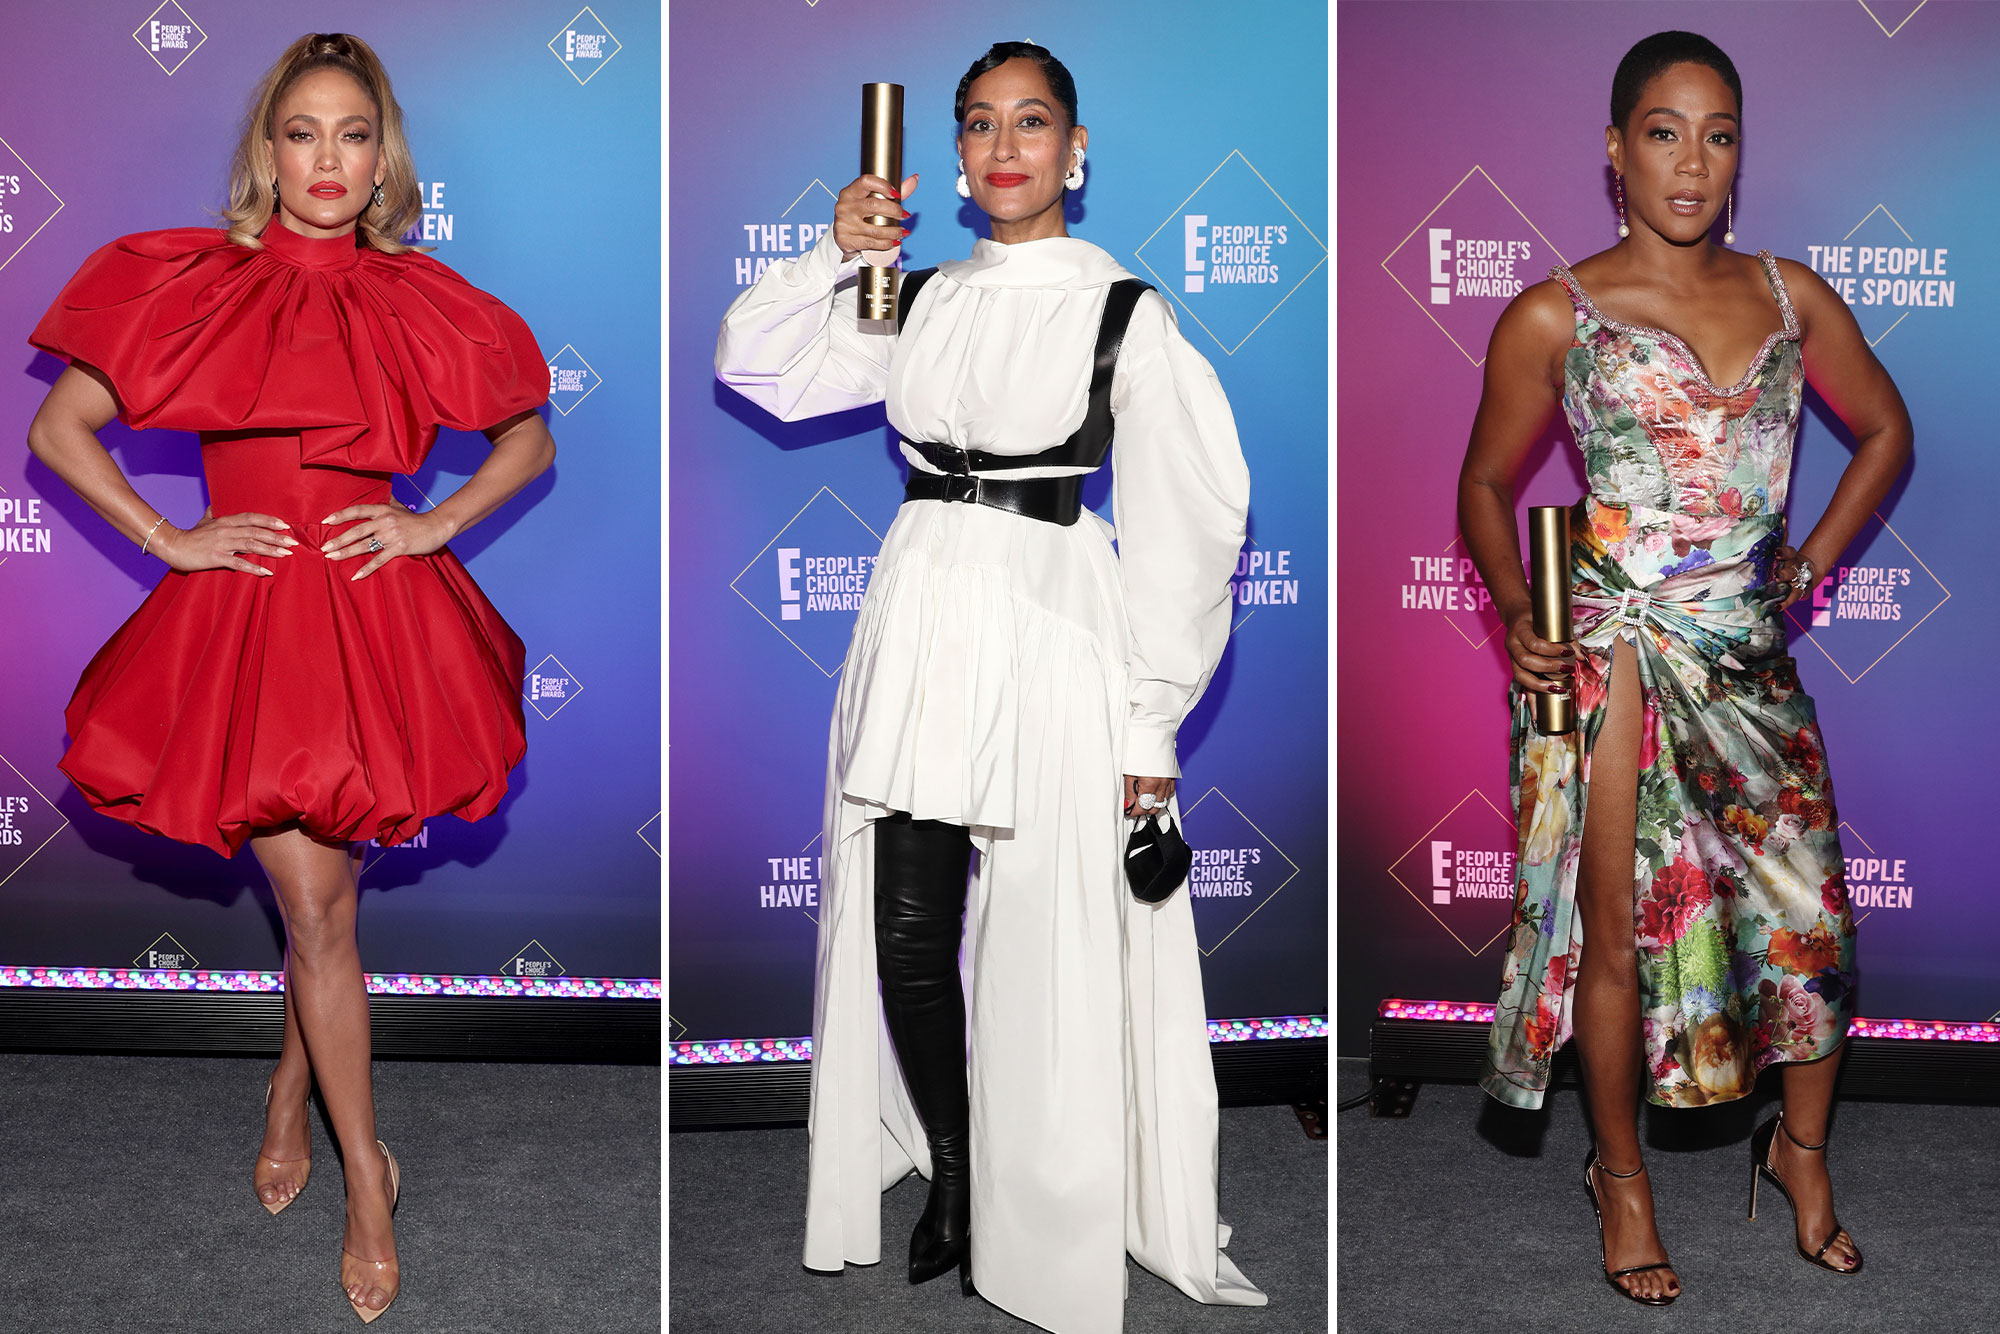 NEWS: People's Choice Awards Best Dressed